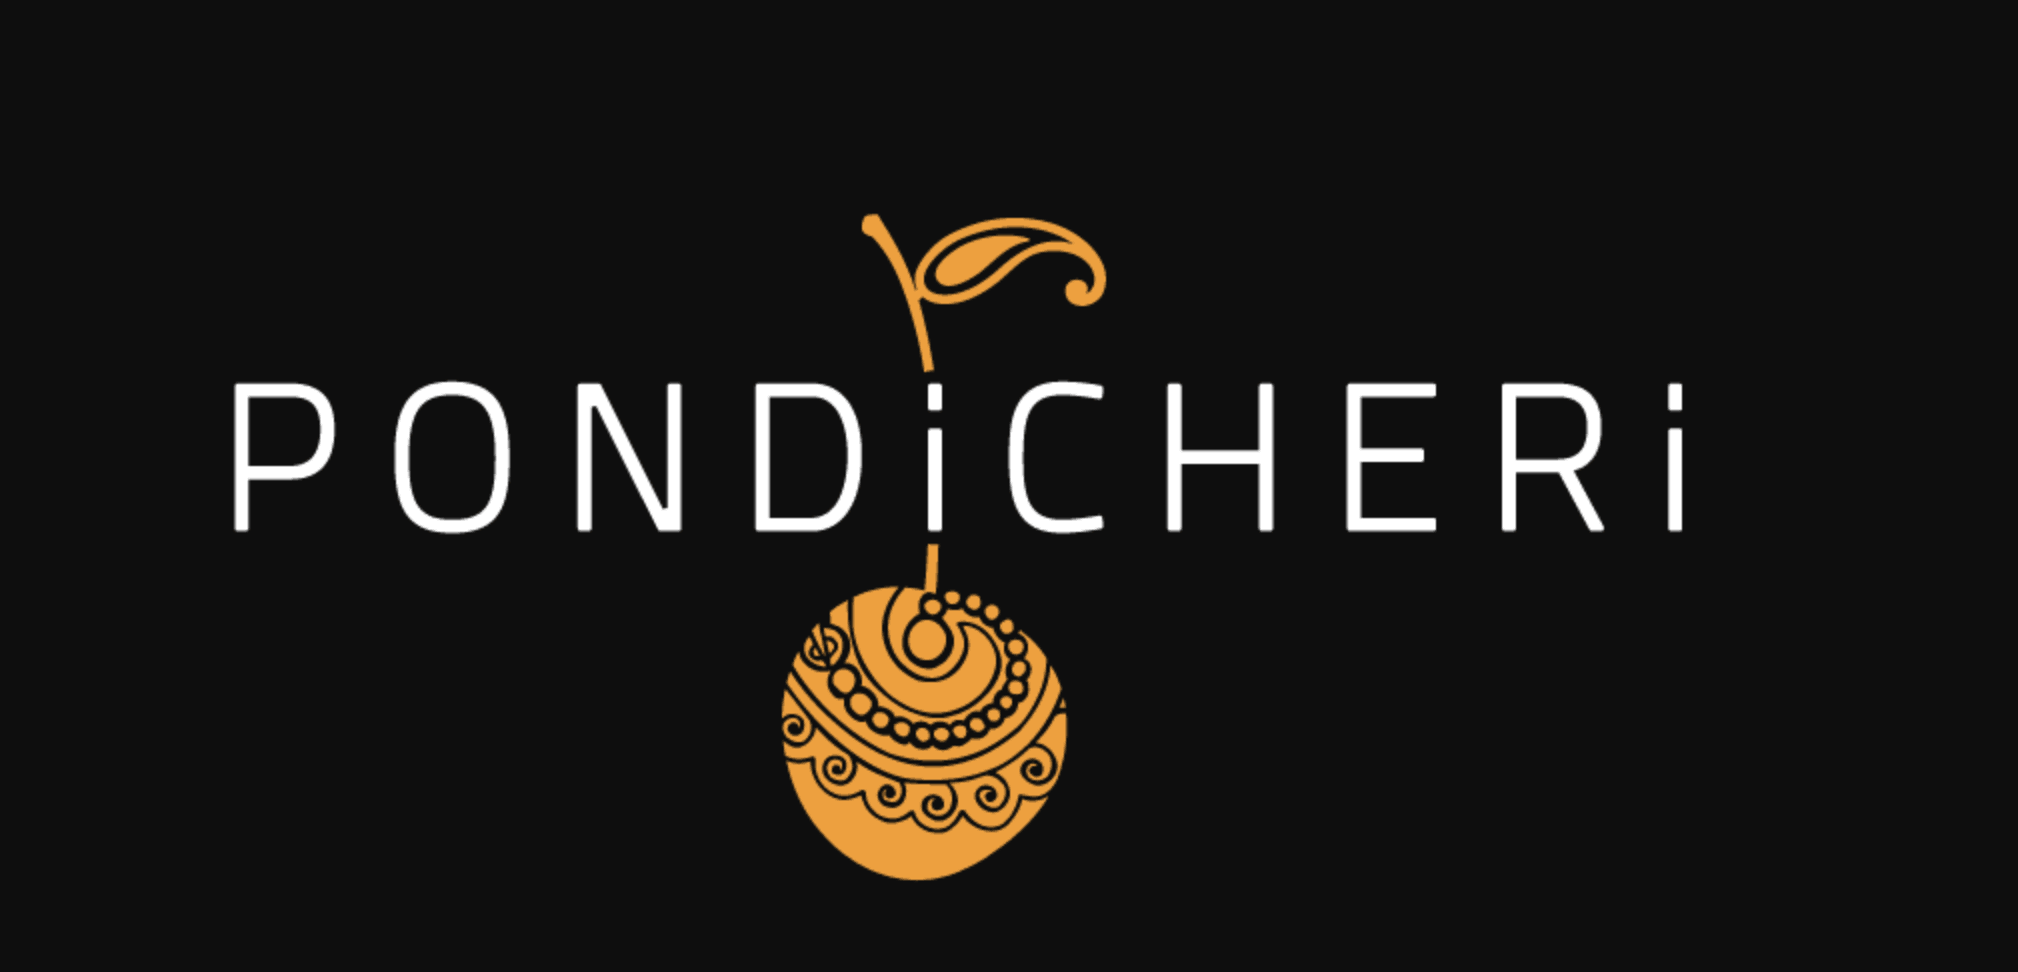 Restaurant logo - Pondicheri